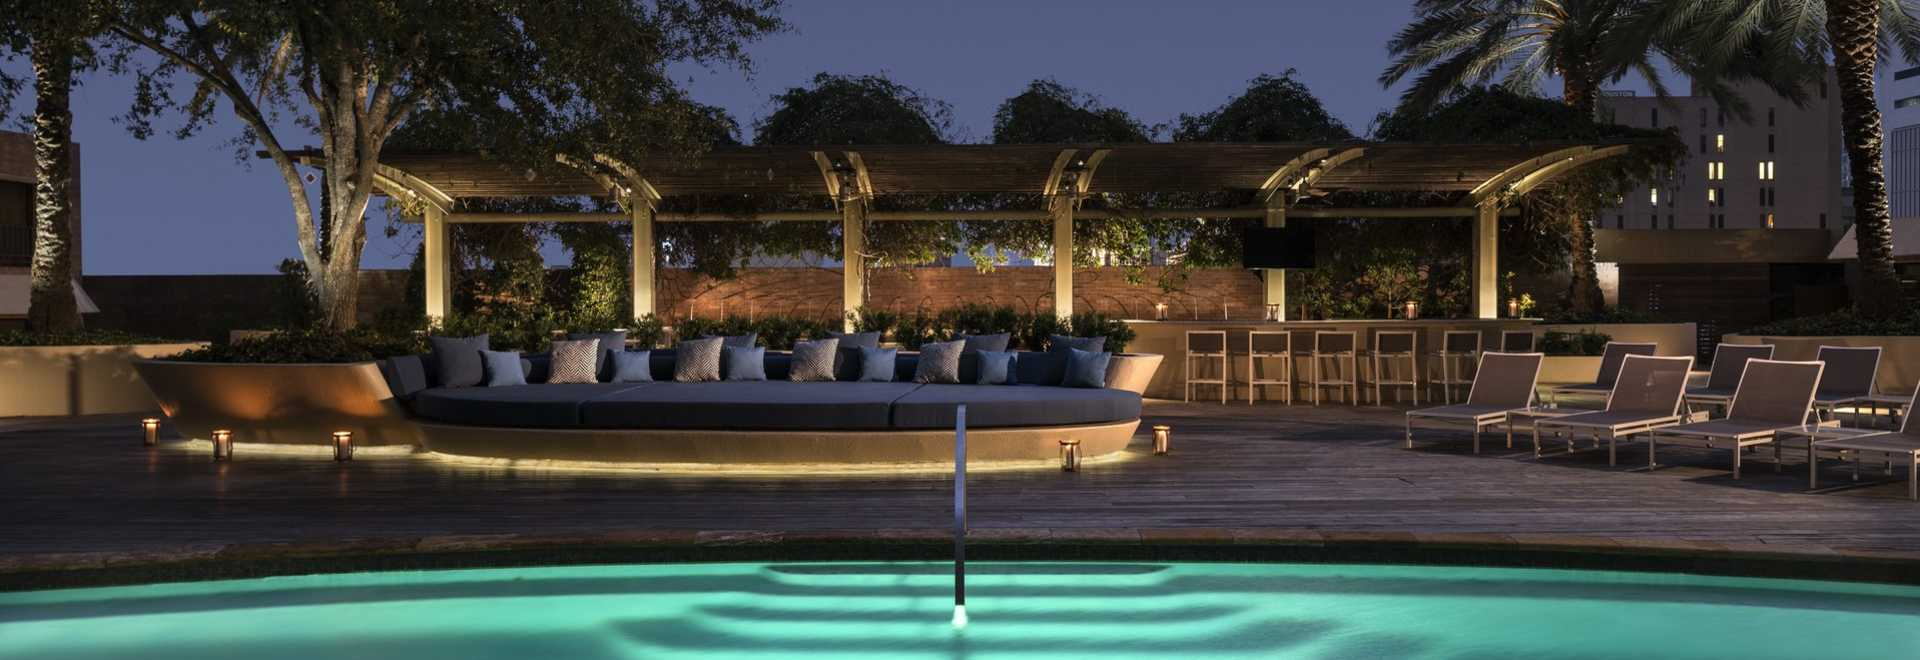 Cool Hotel Pools In Houston Resorts Amp Hotels In Houston